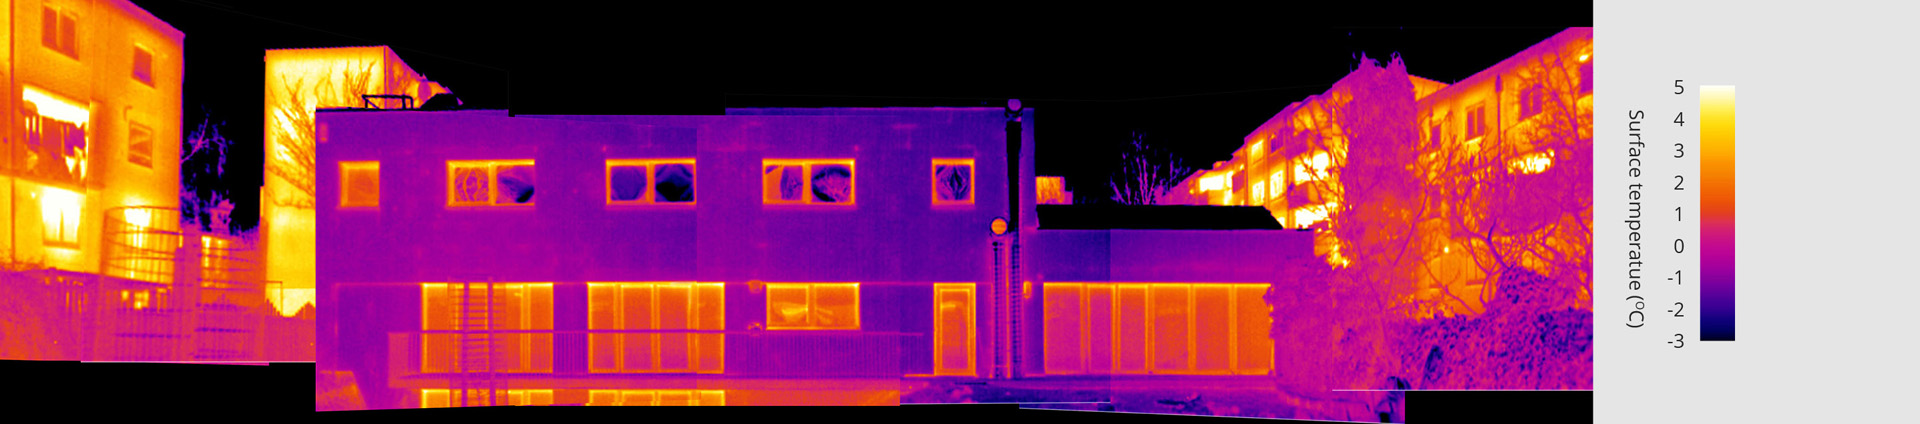 mayville community centre thermal 01